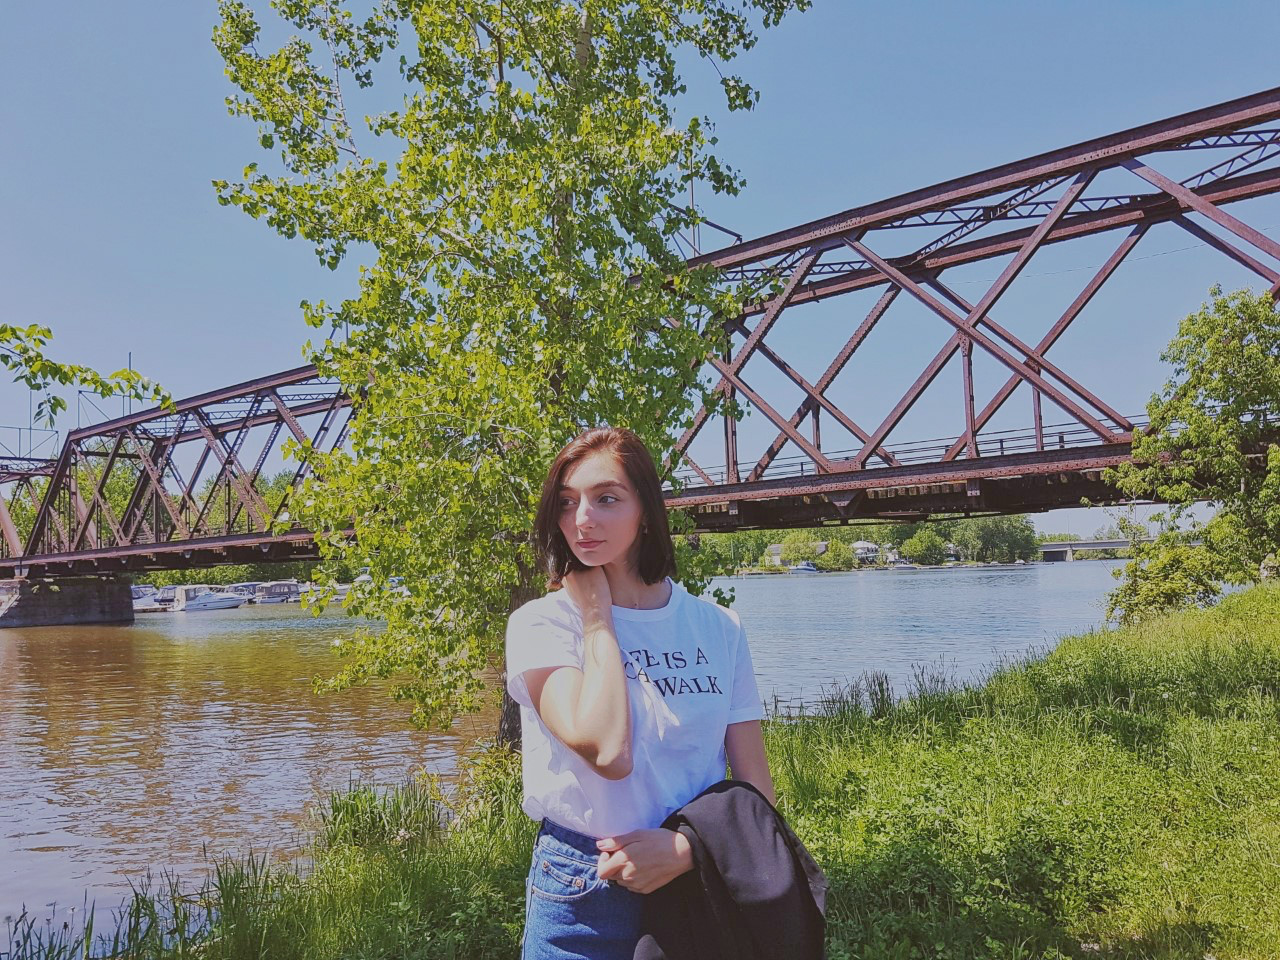 jean shorts, graphic tee, blazer, Zara, forever 21, summer, OOTD, outfit, street style, personal style, Montreal, fashion blogger, lifestyle